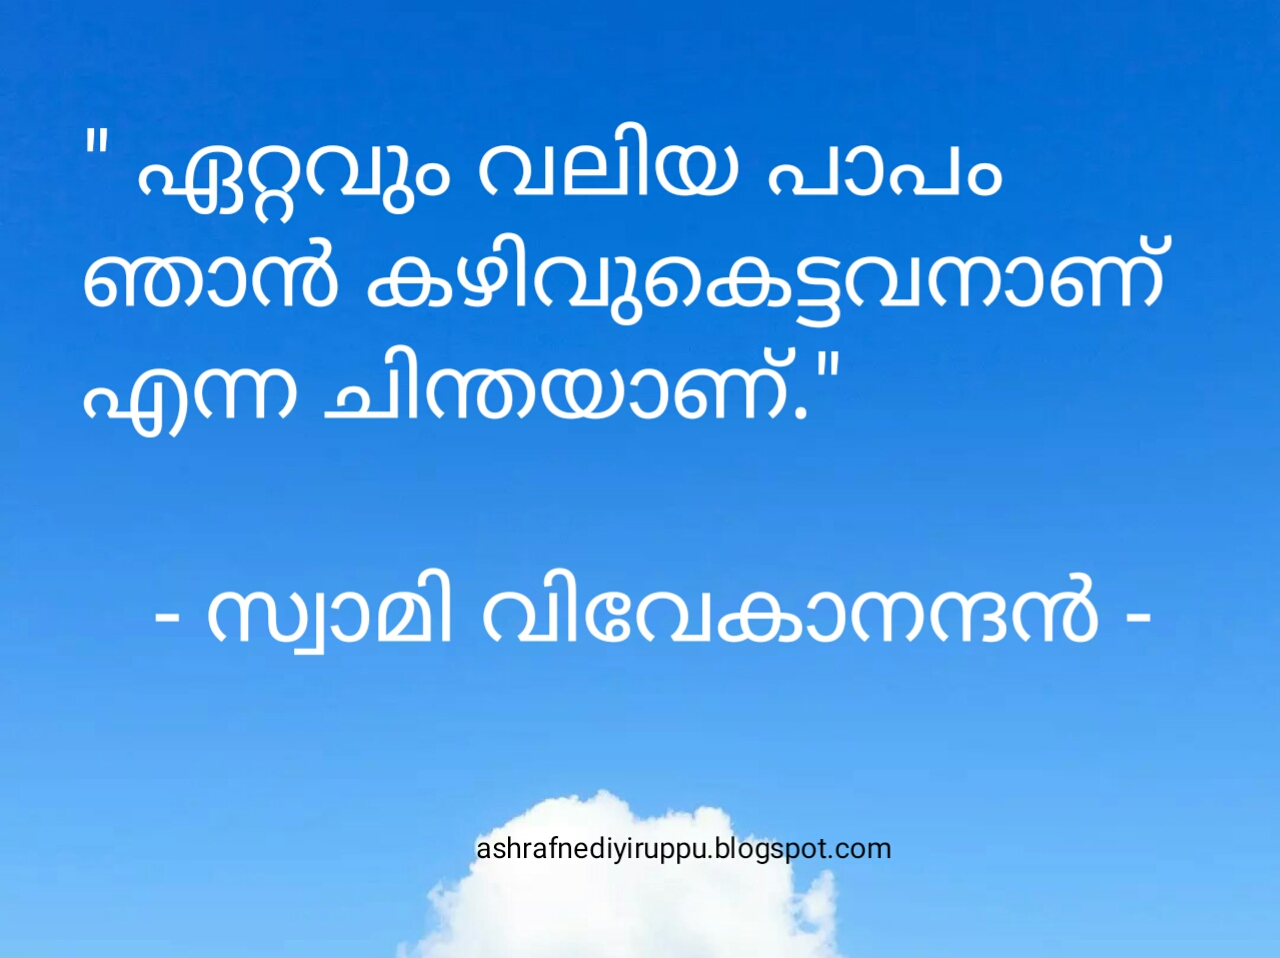 Positive Thinking Quotes Images In Malayalam Best Wallpapers Cloud